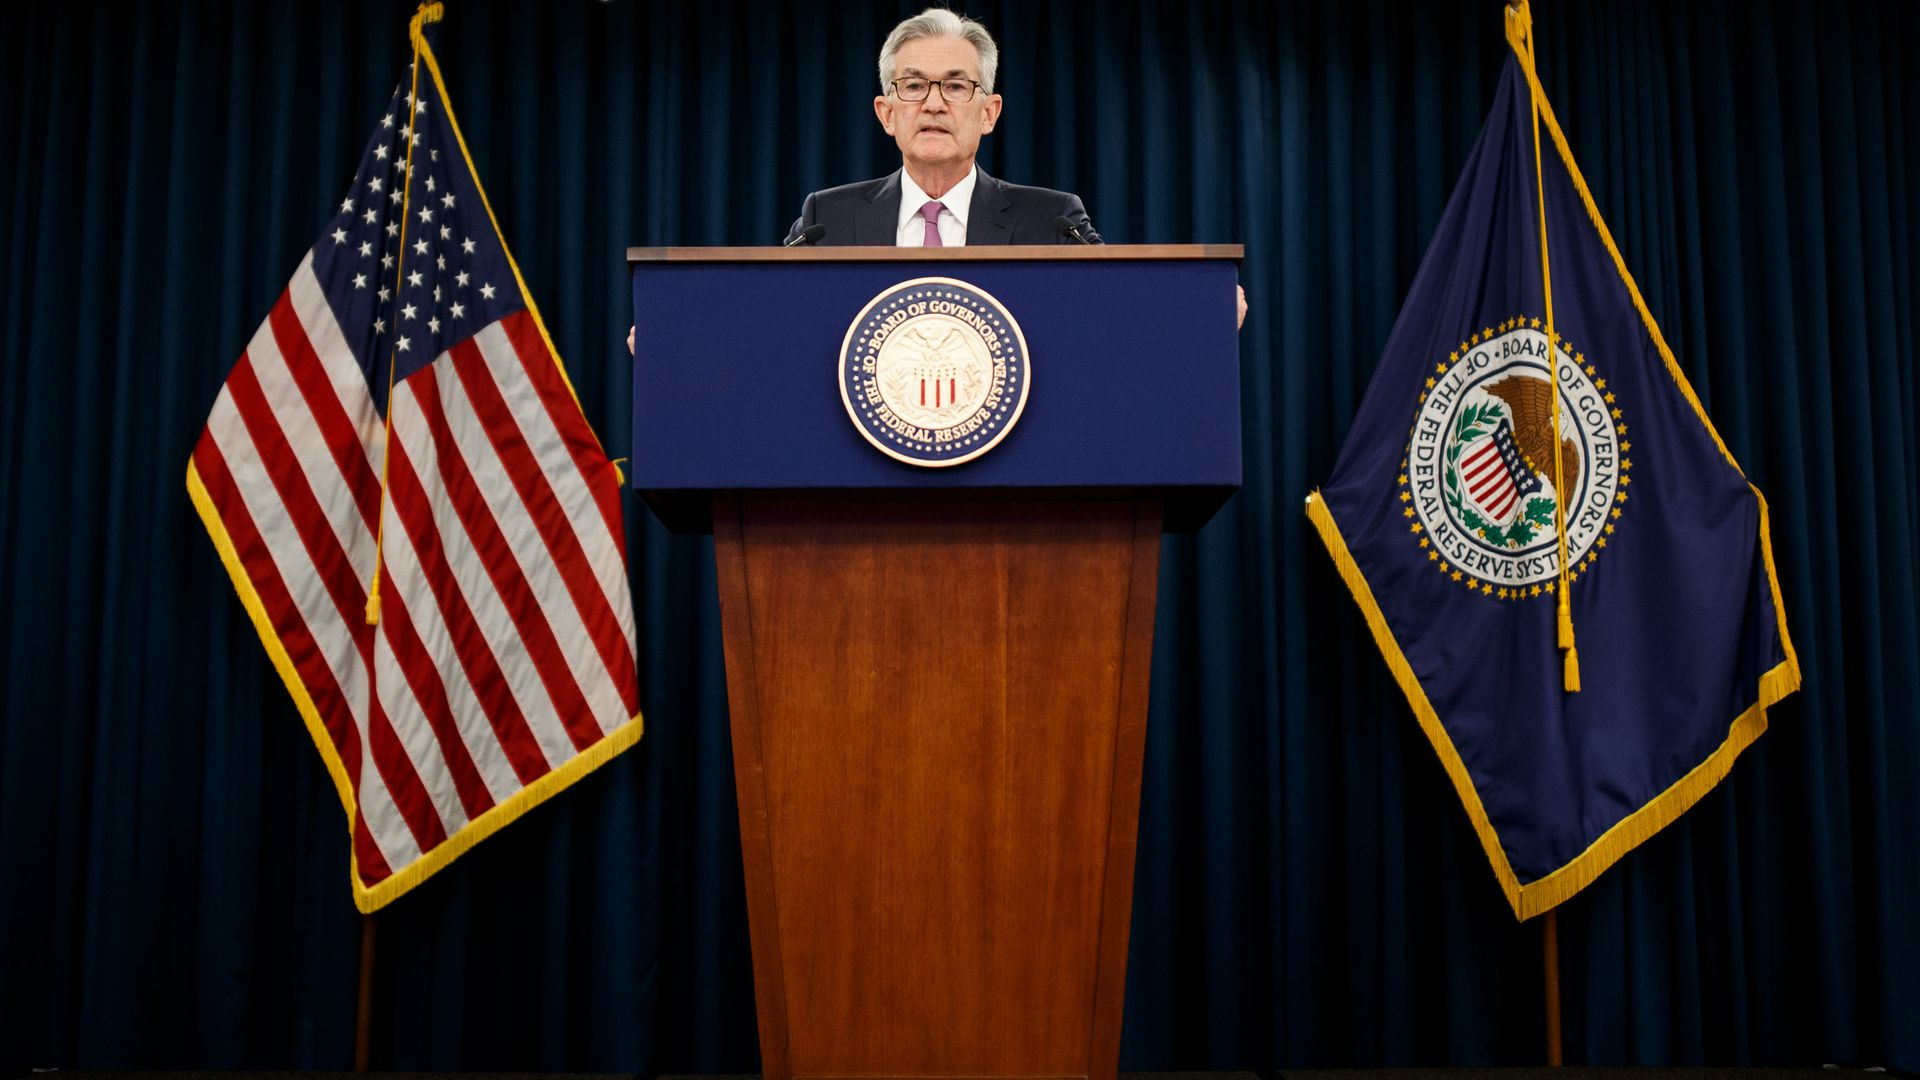 WASHINGTON , June 19, 2019 -- U.S. Federal Reserve Chairman Jerome Powell speaks at a press conference in Washington D.C., the United States, on June 19, 2019